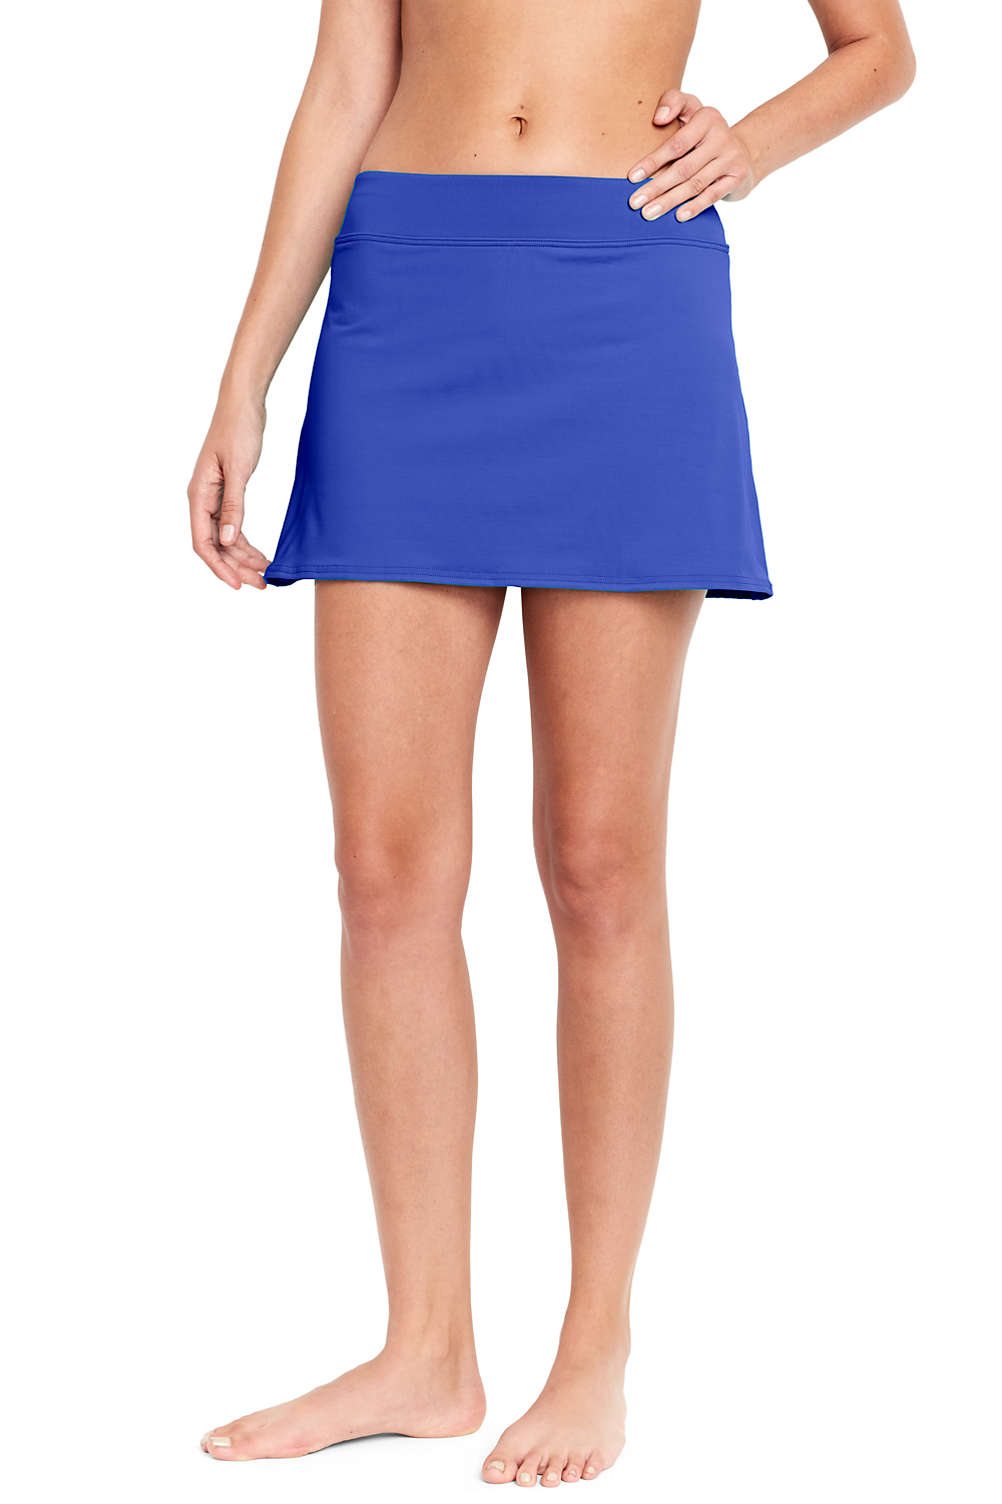 eddc959f5a4f Women's Ease In To Comfort Stretchable Above The Knee Pencil Skirt 19